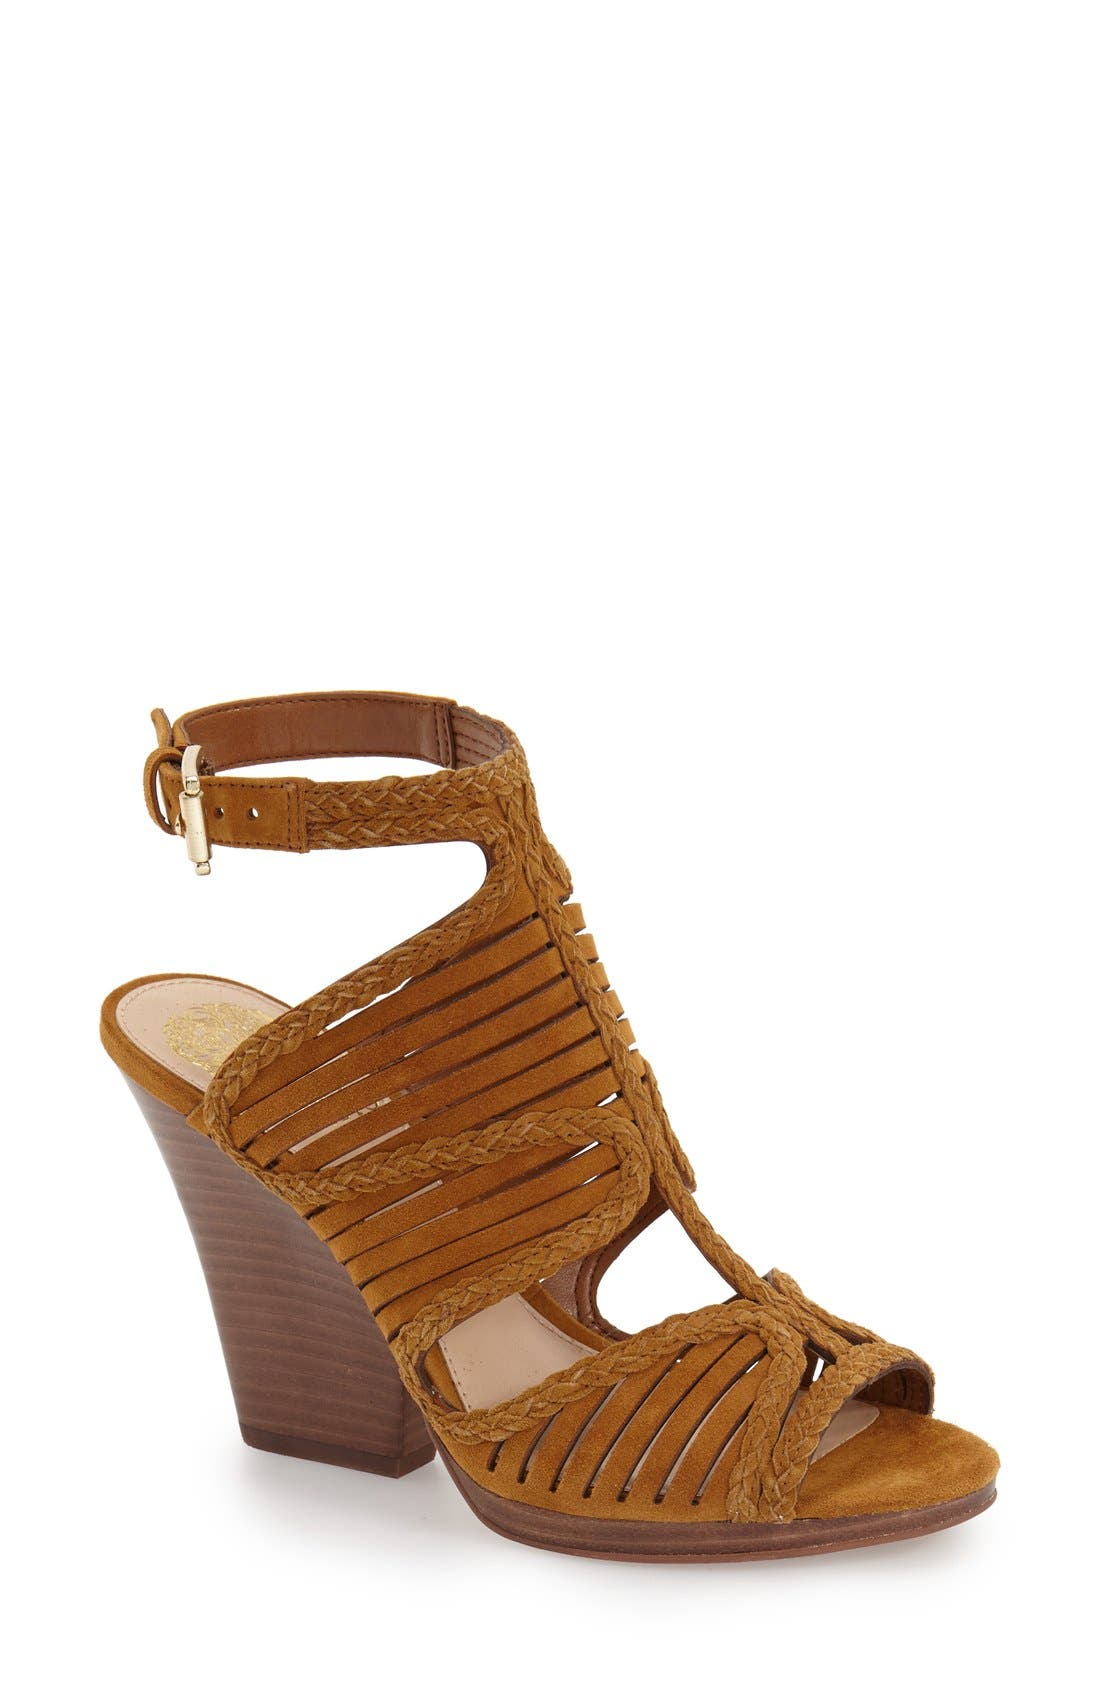 Main Image - Vince Camuto 'Janil' Sandal (Women) (Nordstrom Exclusive)